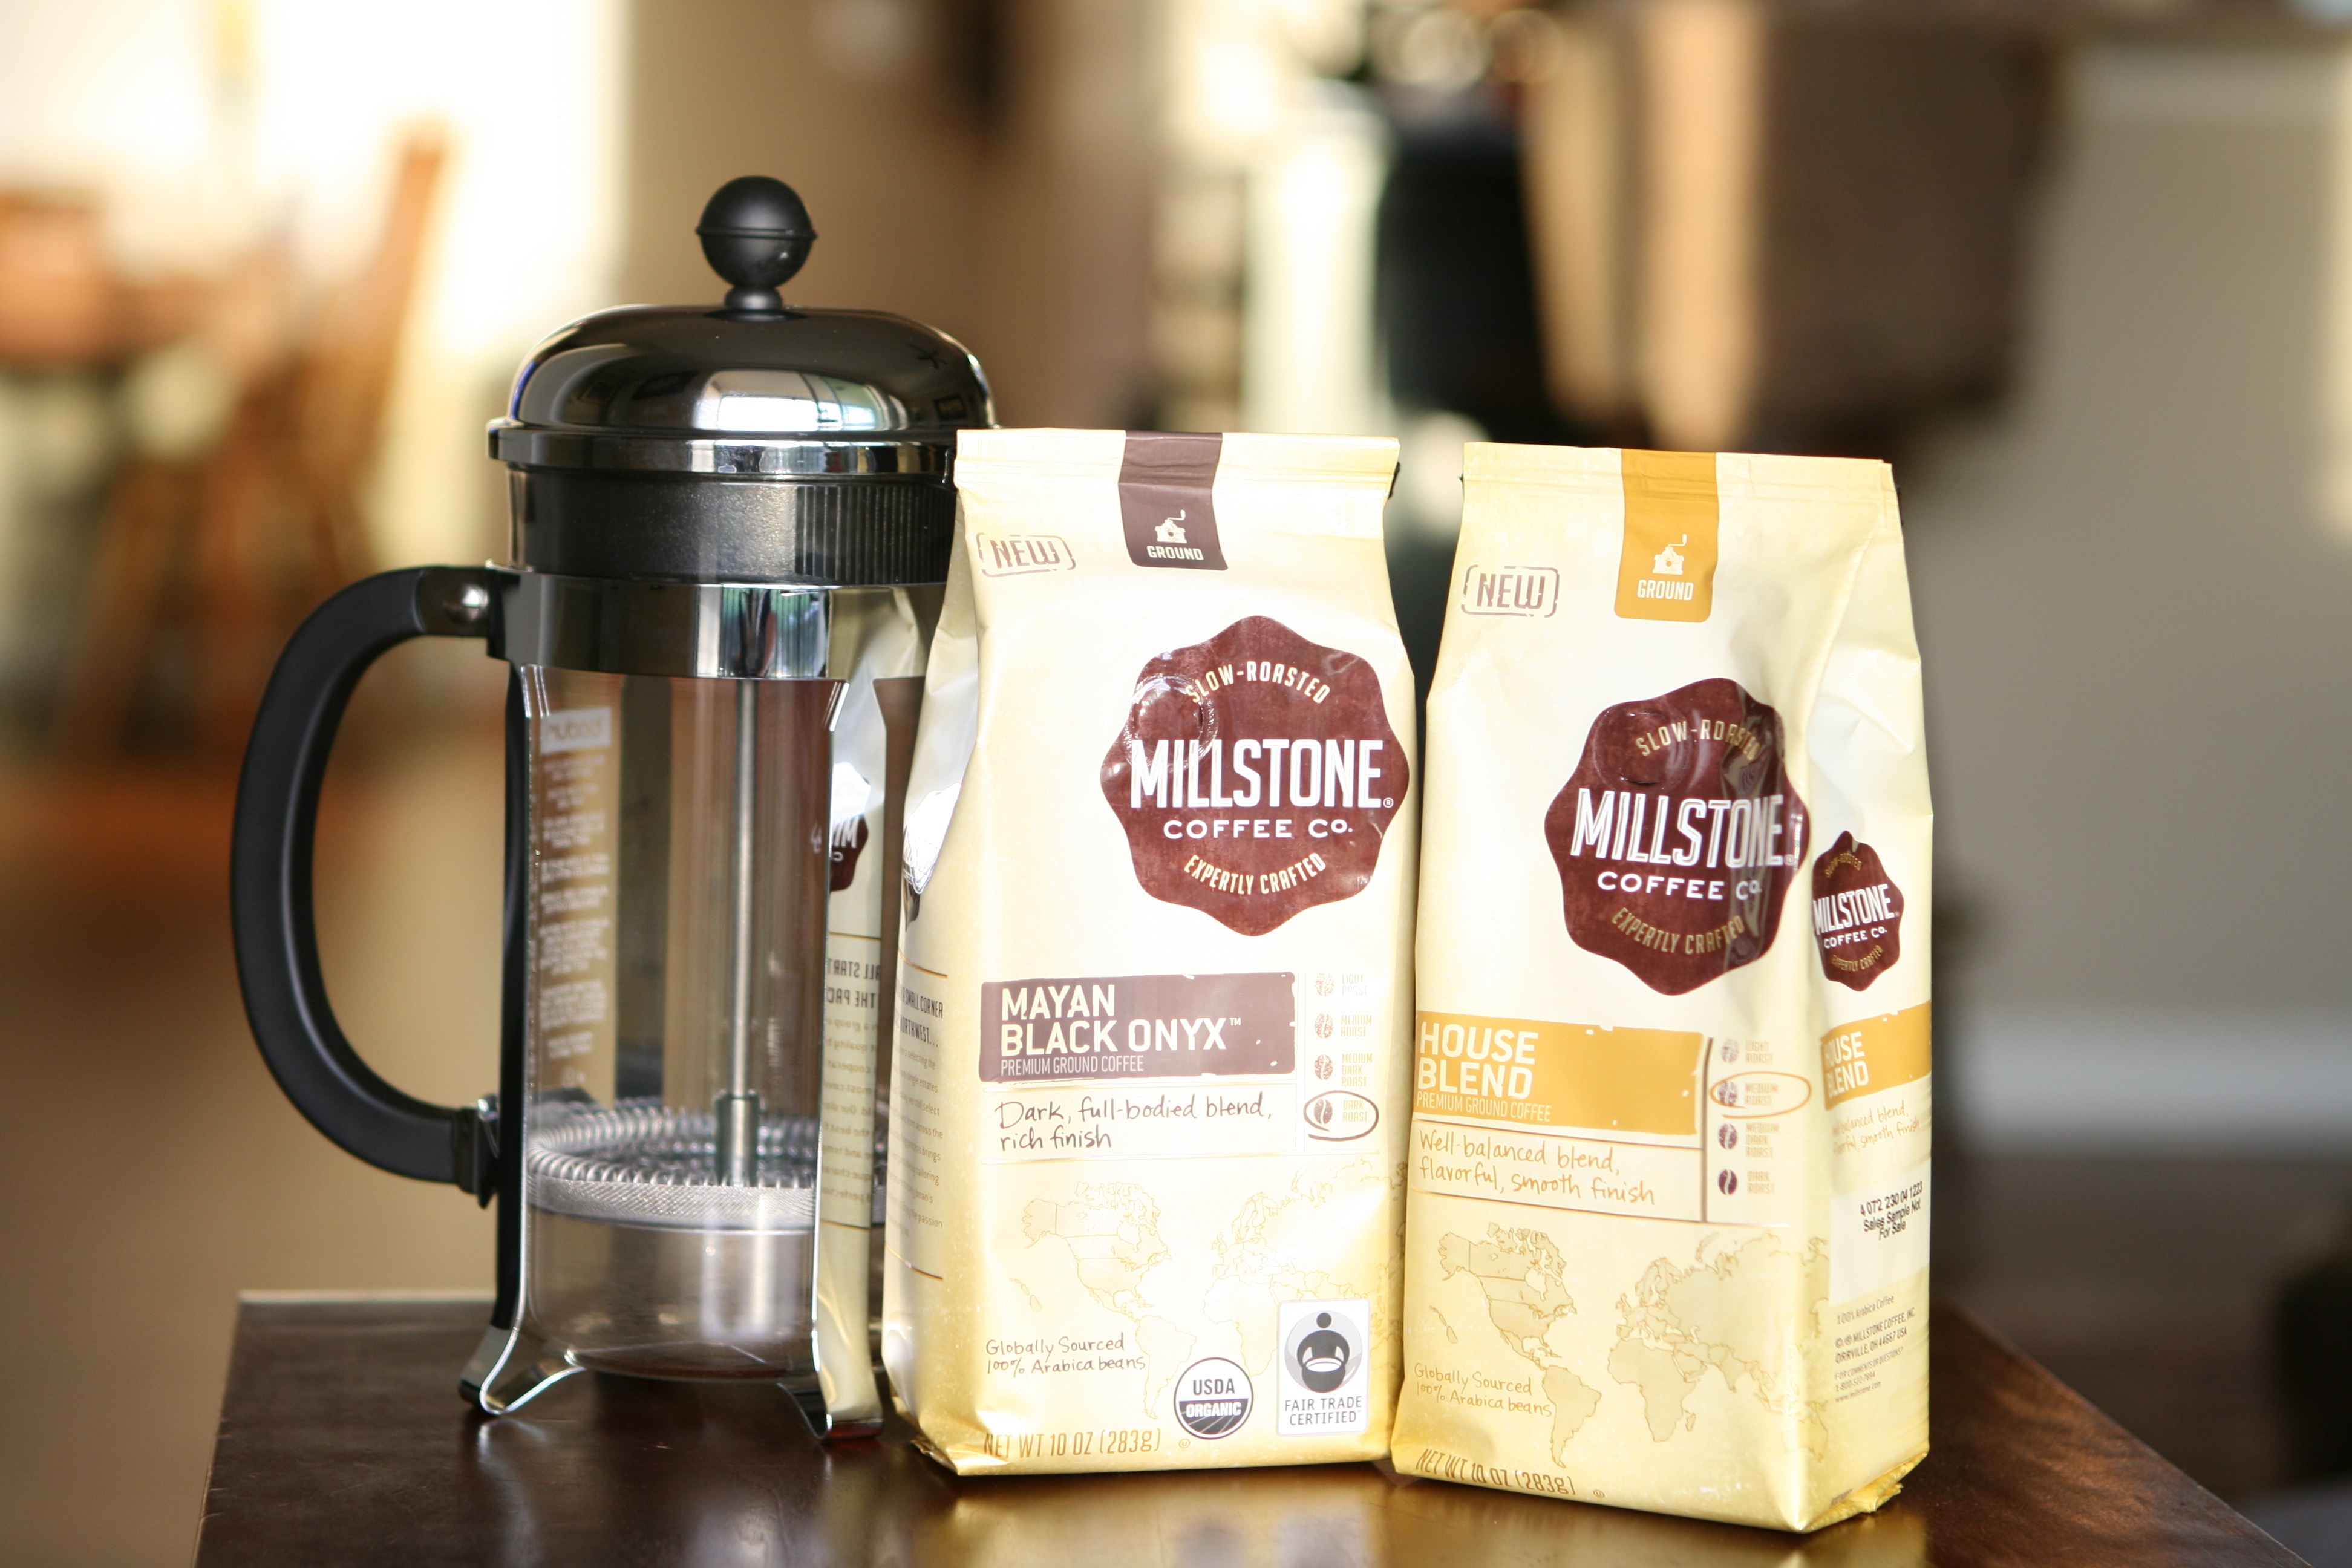 Millstone Coffee